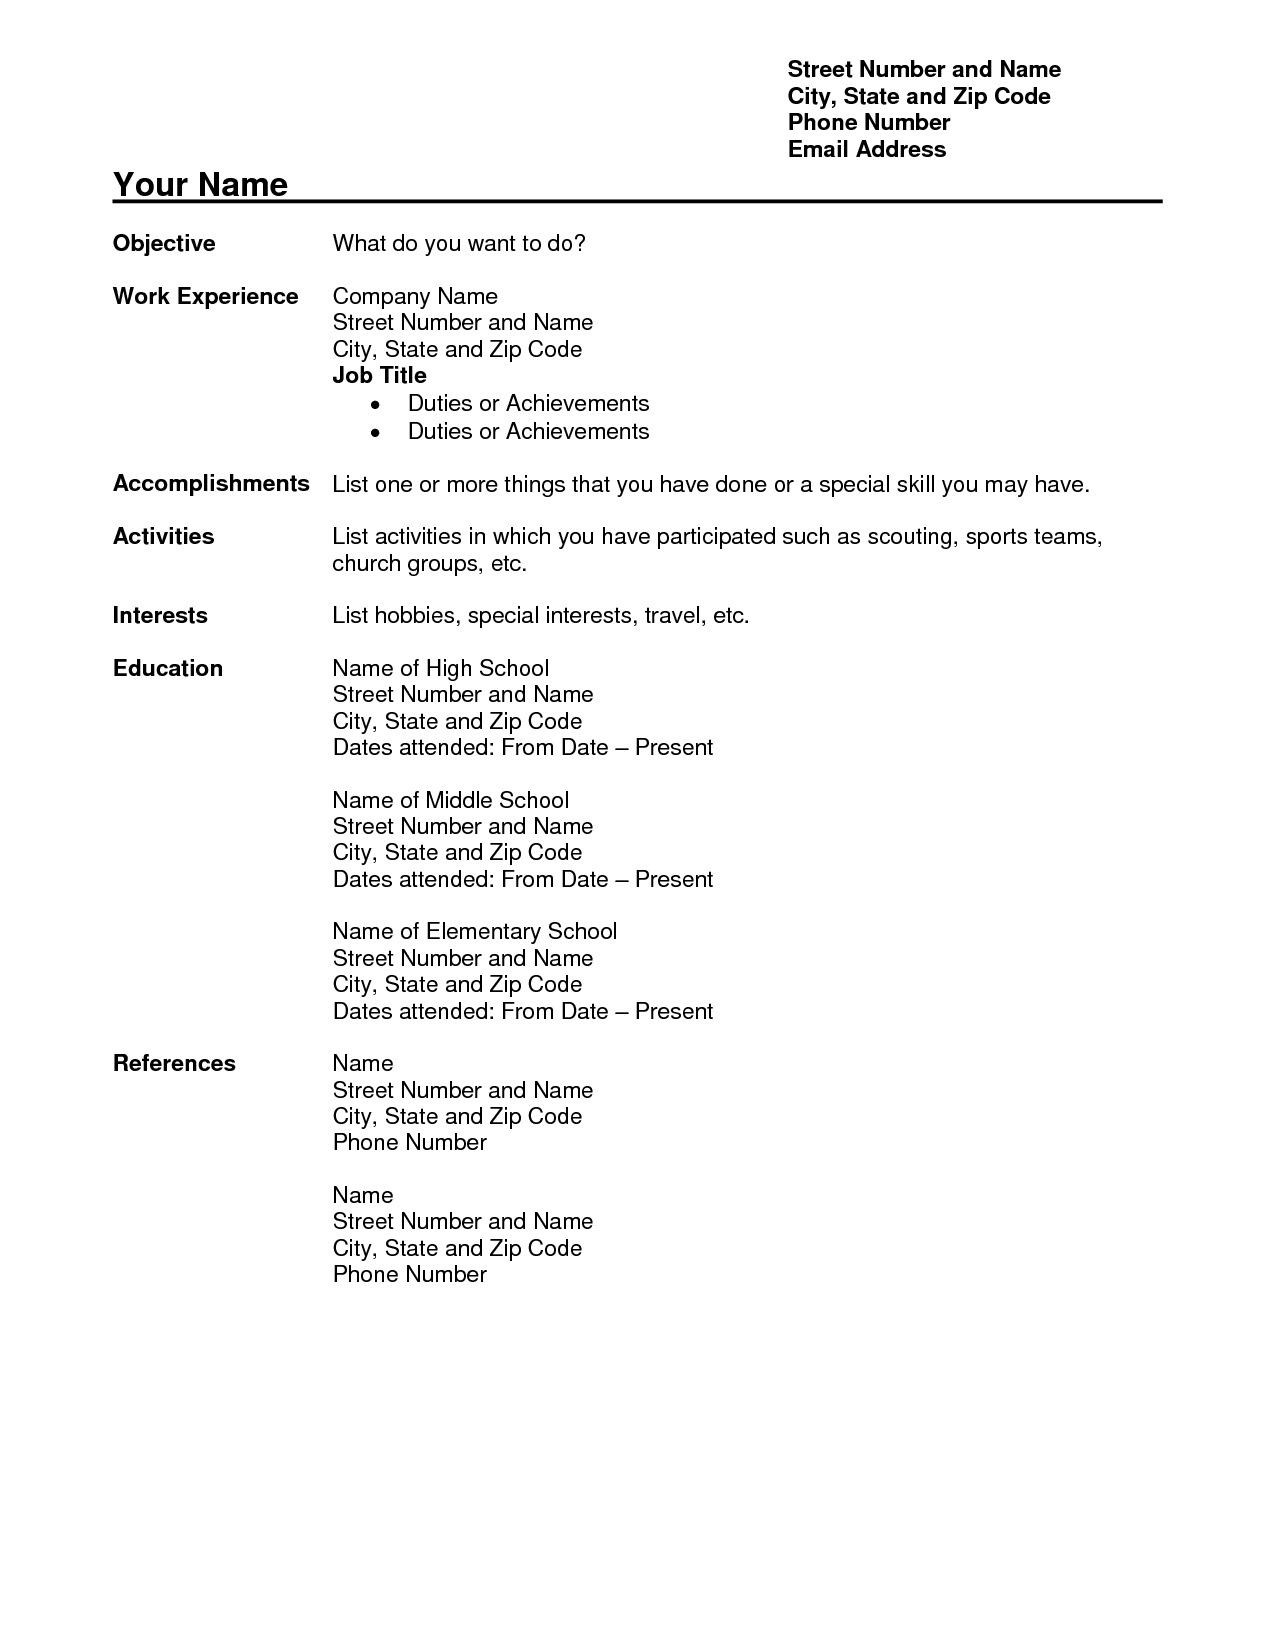 Free Job Resume Template Free Teacher Resume Templates Download Free Teacher Resume